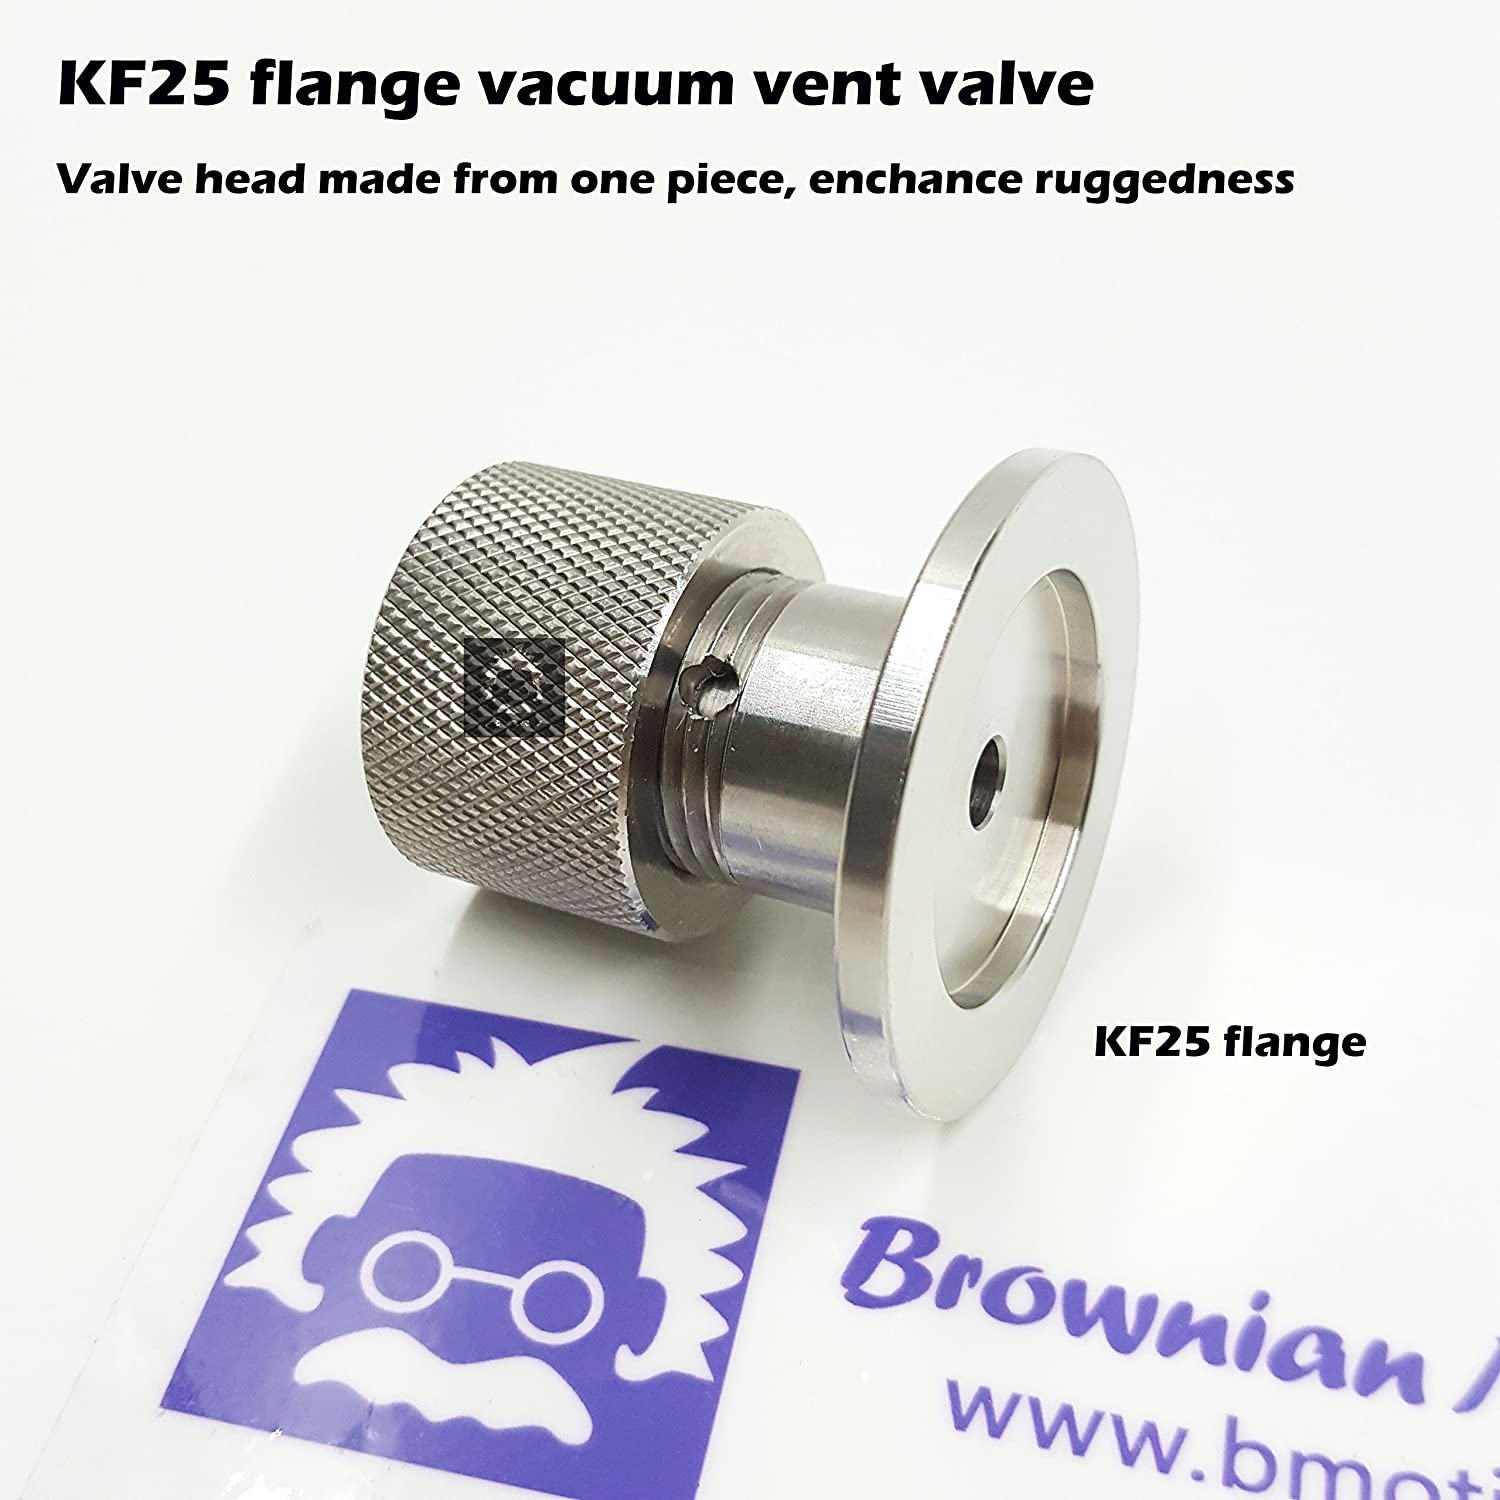 ISO-KF KF16 KF25 KF16 Vent vlave KF40 Flange Vent Valve to Break Vacuum in a Controlled Manner